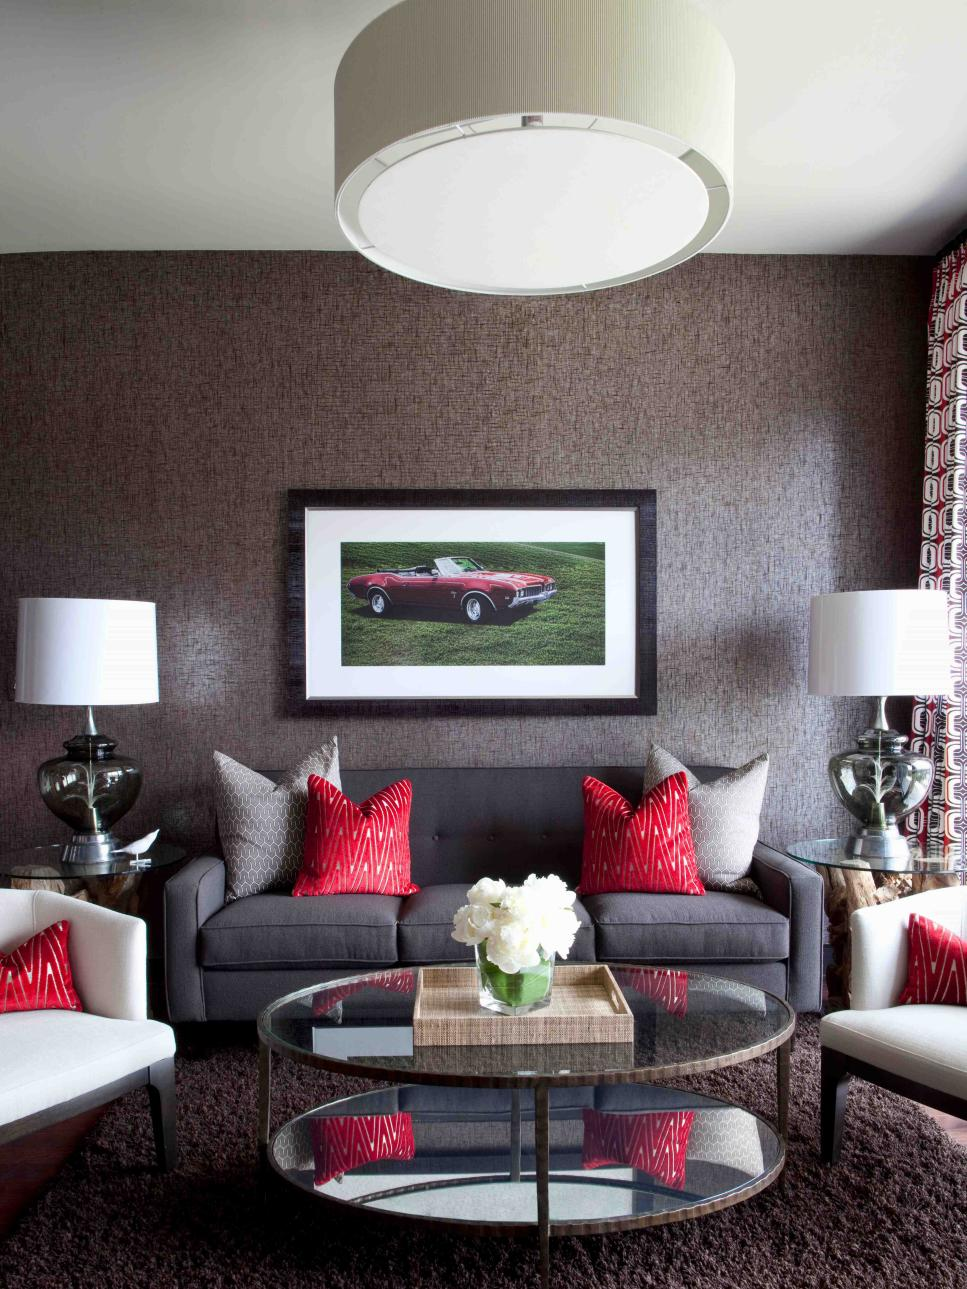 High end bachelor pad decorating on a budget hgtv for Living room ideas on a budget uk